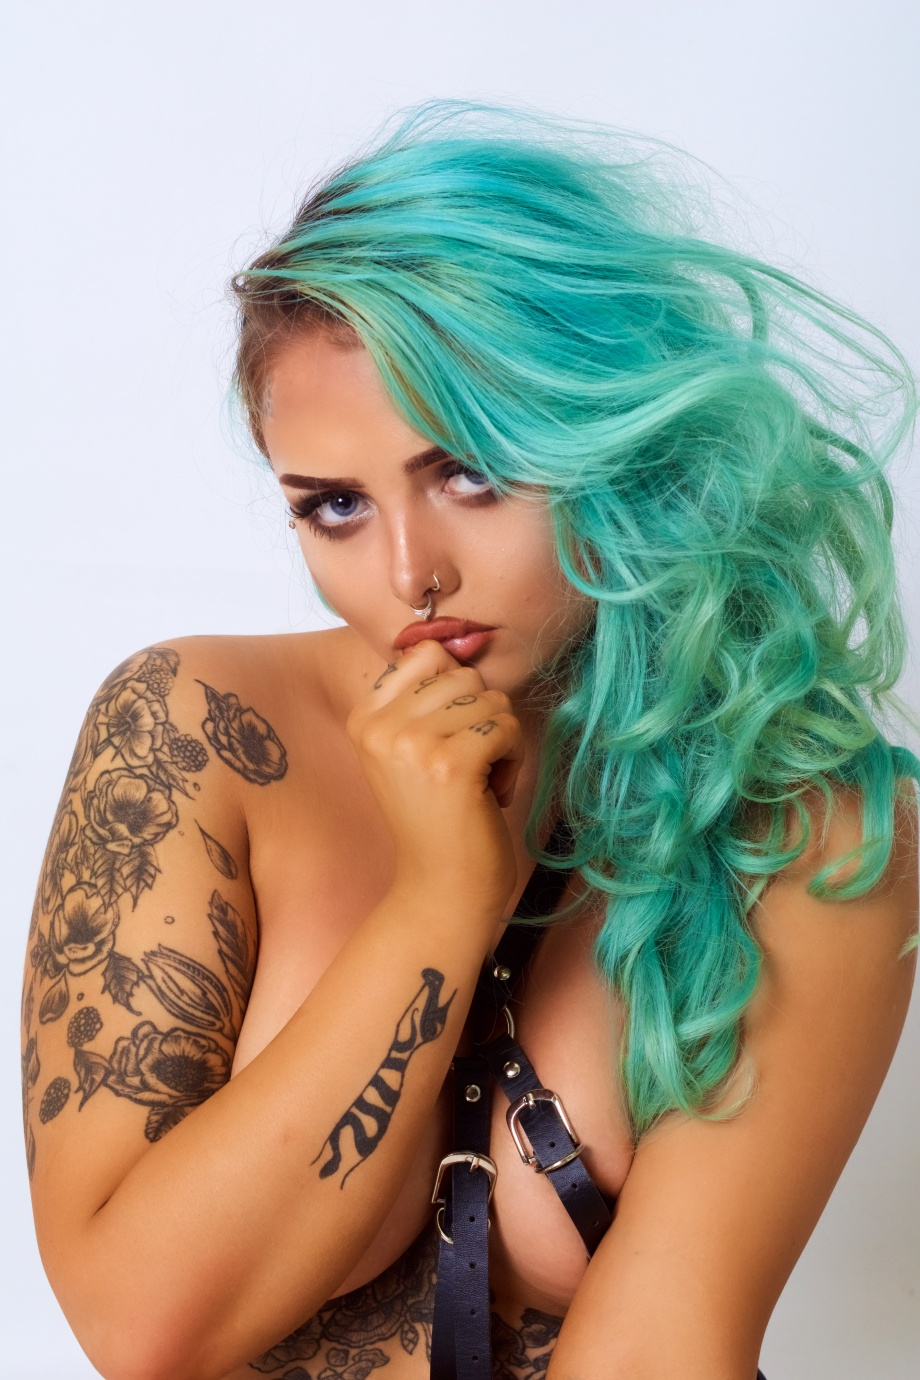 Katie Kitten, alternative, glamour, studio, tattoos, cork, ireland, topless, implied